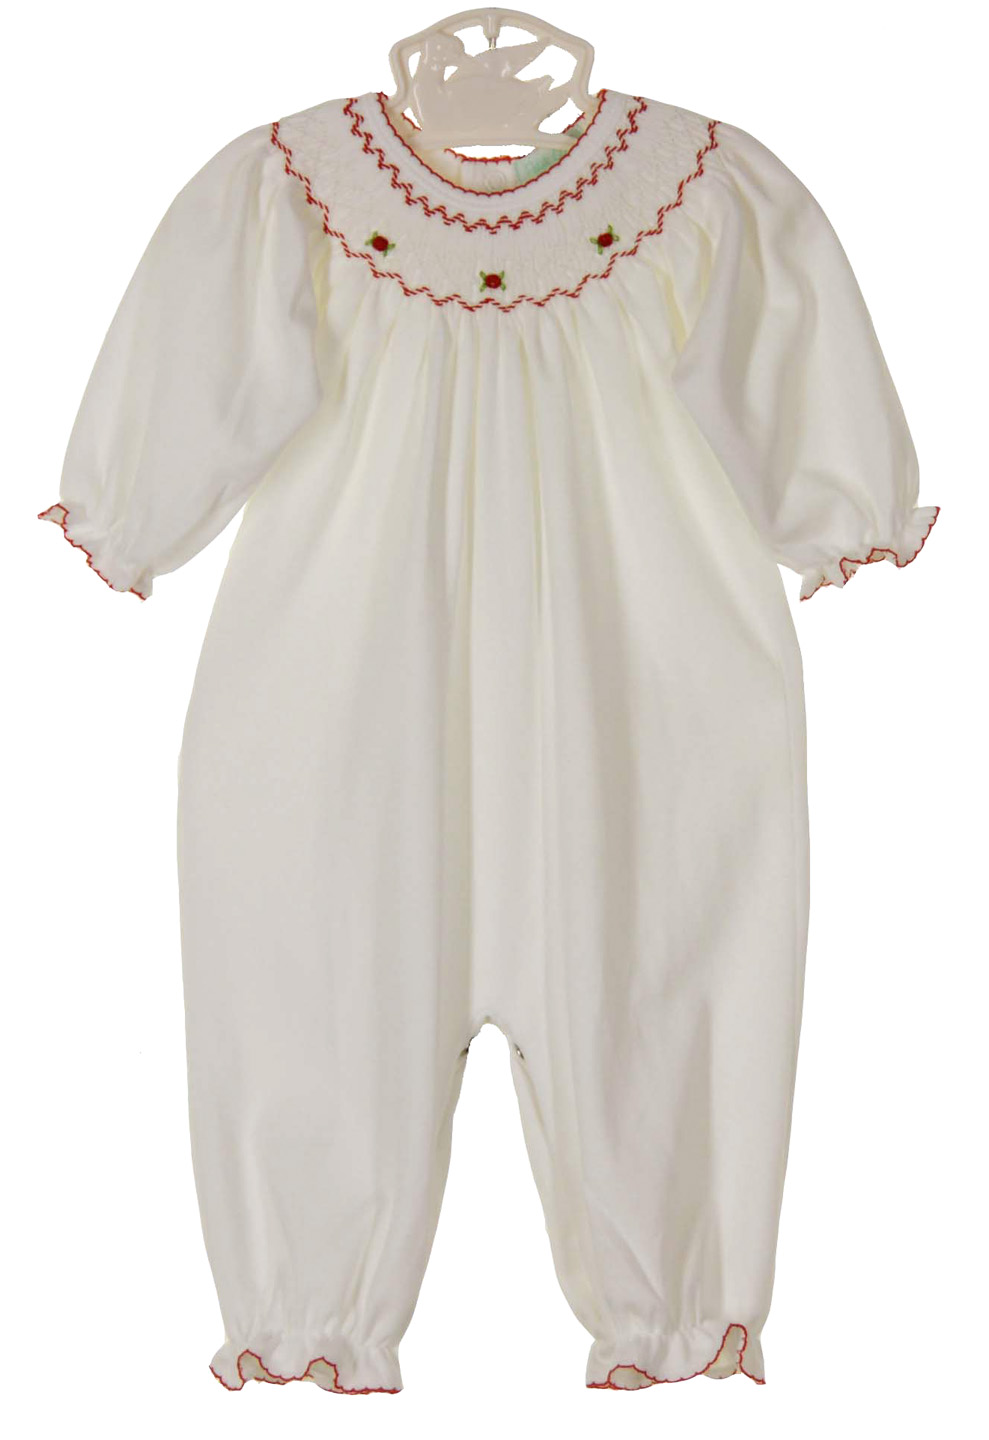 283fa4cc9552 Petit Ami white pima cotton smocked gown and hat set with red smocking